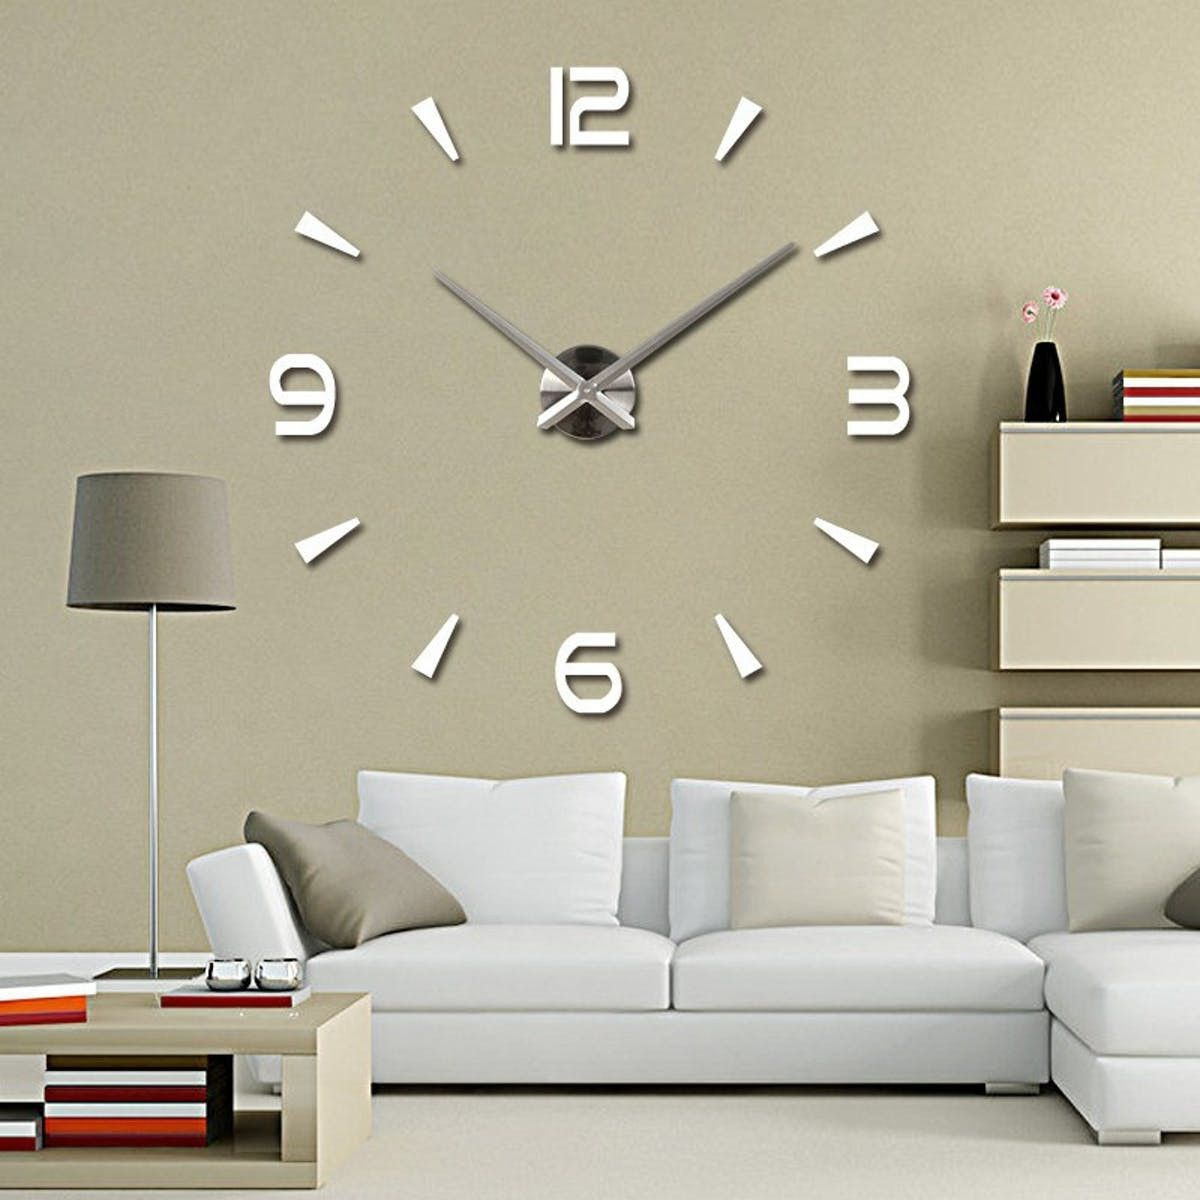 A Fashion And Creative Wall Clock Which Will Make Your Living Room More Personalized And Unique You Can Living Room Clocks Large Wall Clock Wall Clock Sticker